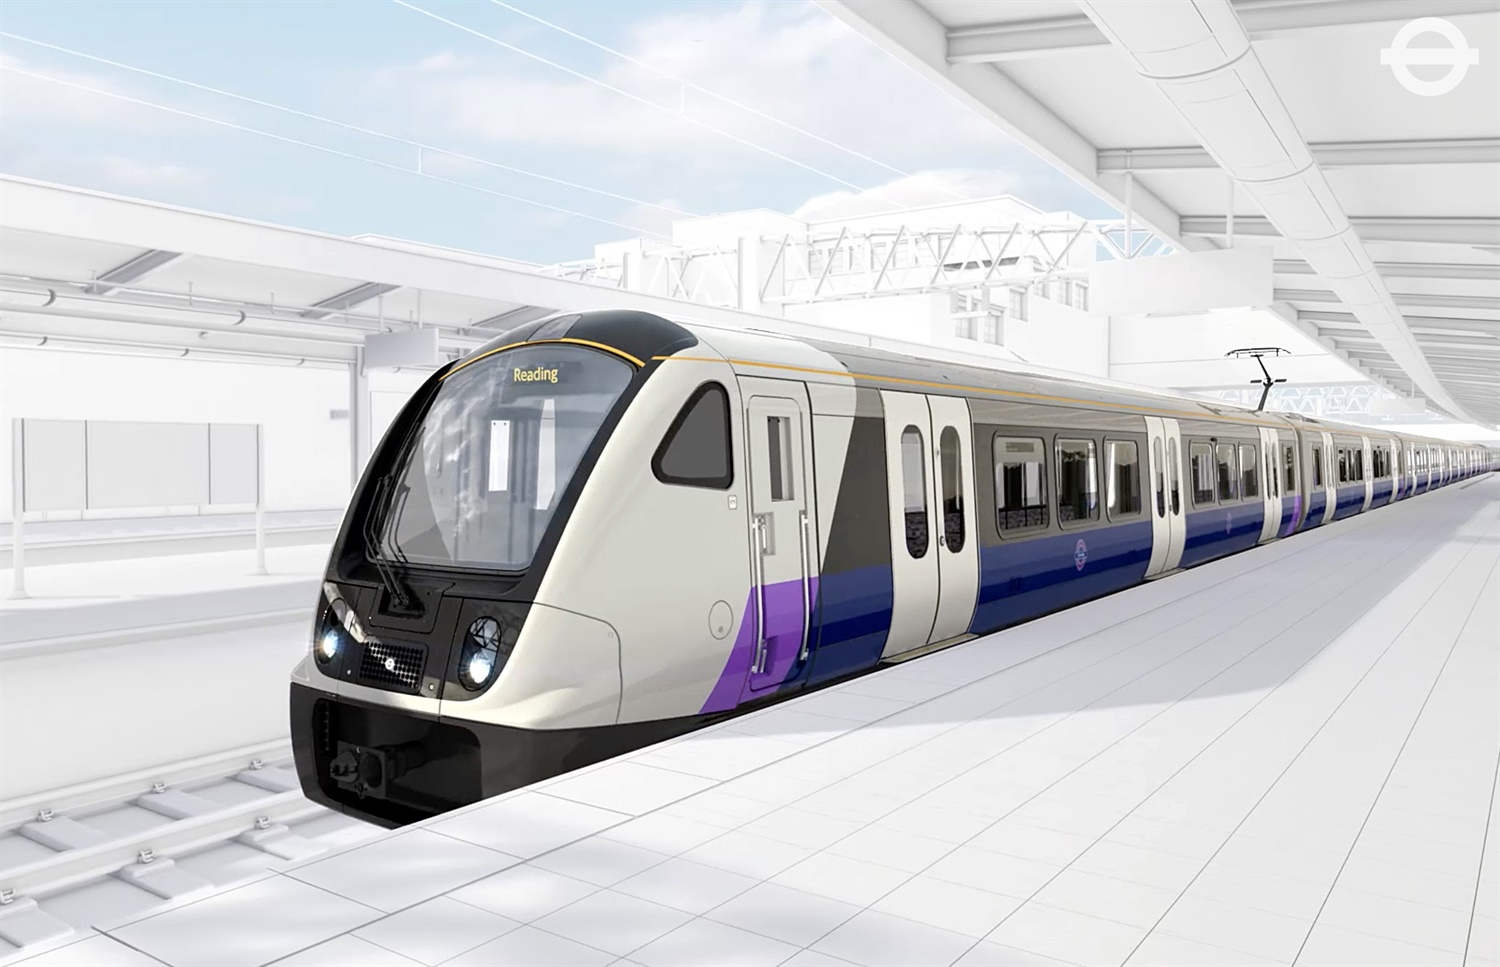 East Orange Focus >> Crossrail unveils first images of Bombardier's Aventra train design